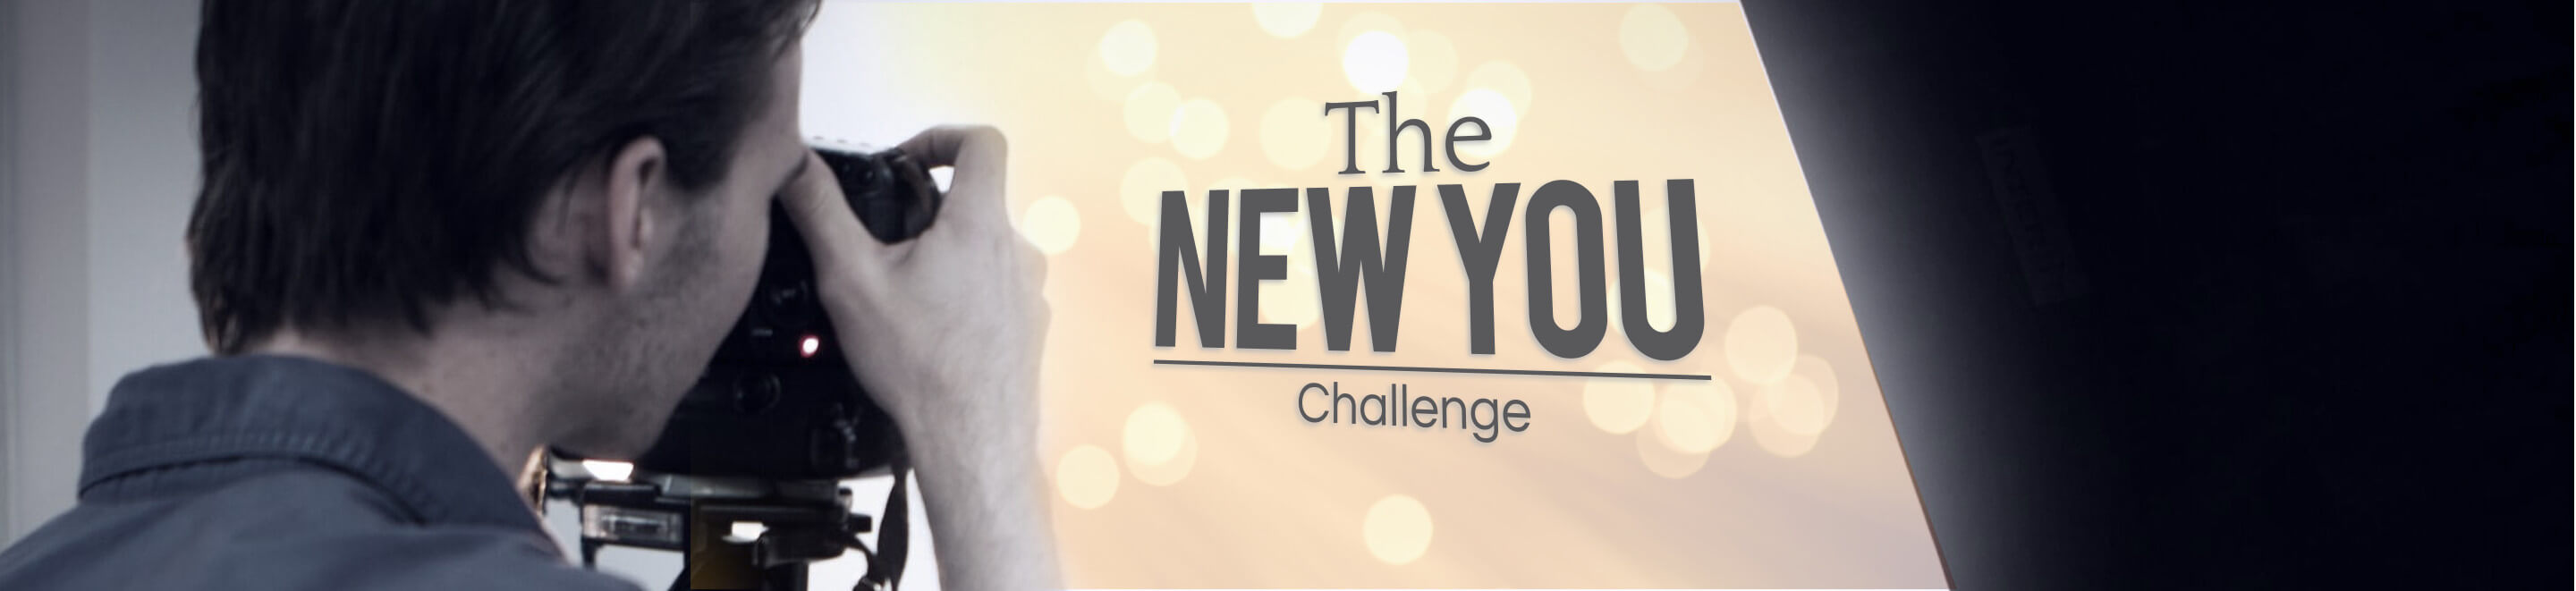 The New You Challenge